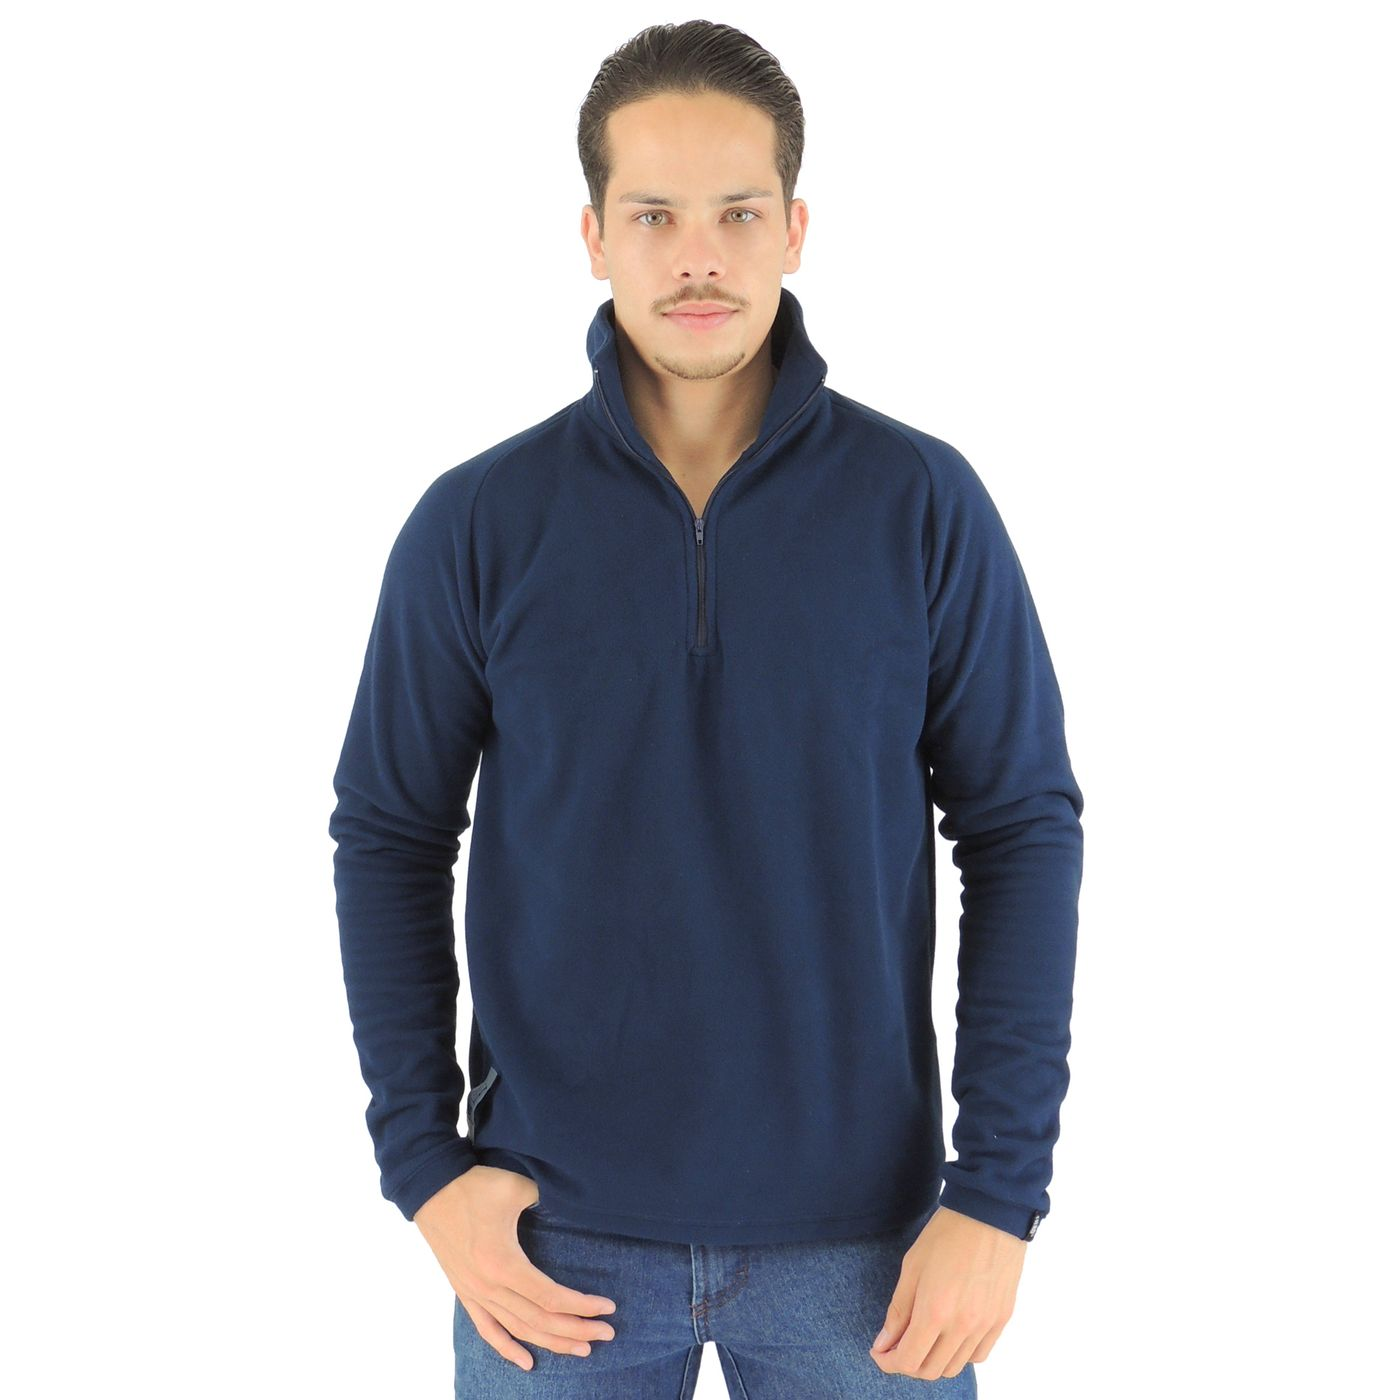 Fleece termico masculino azul marinho - fieroshop 25dad48c5996d